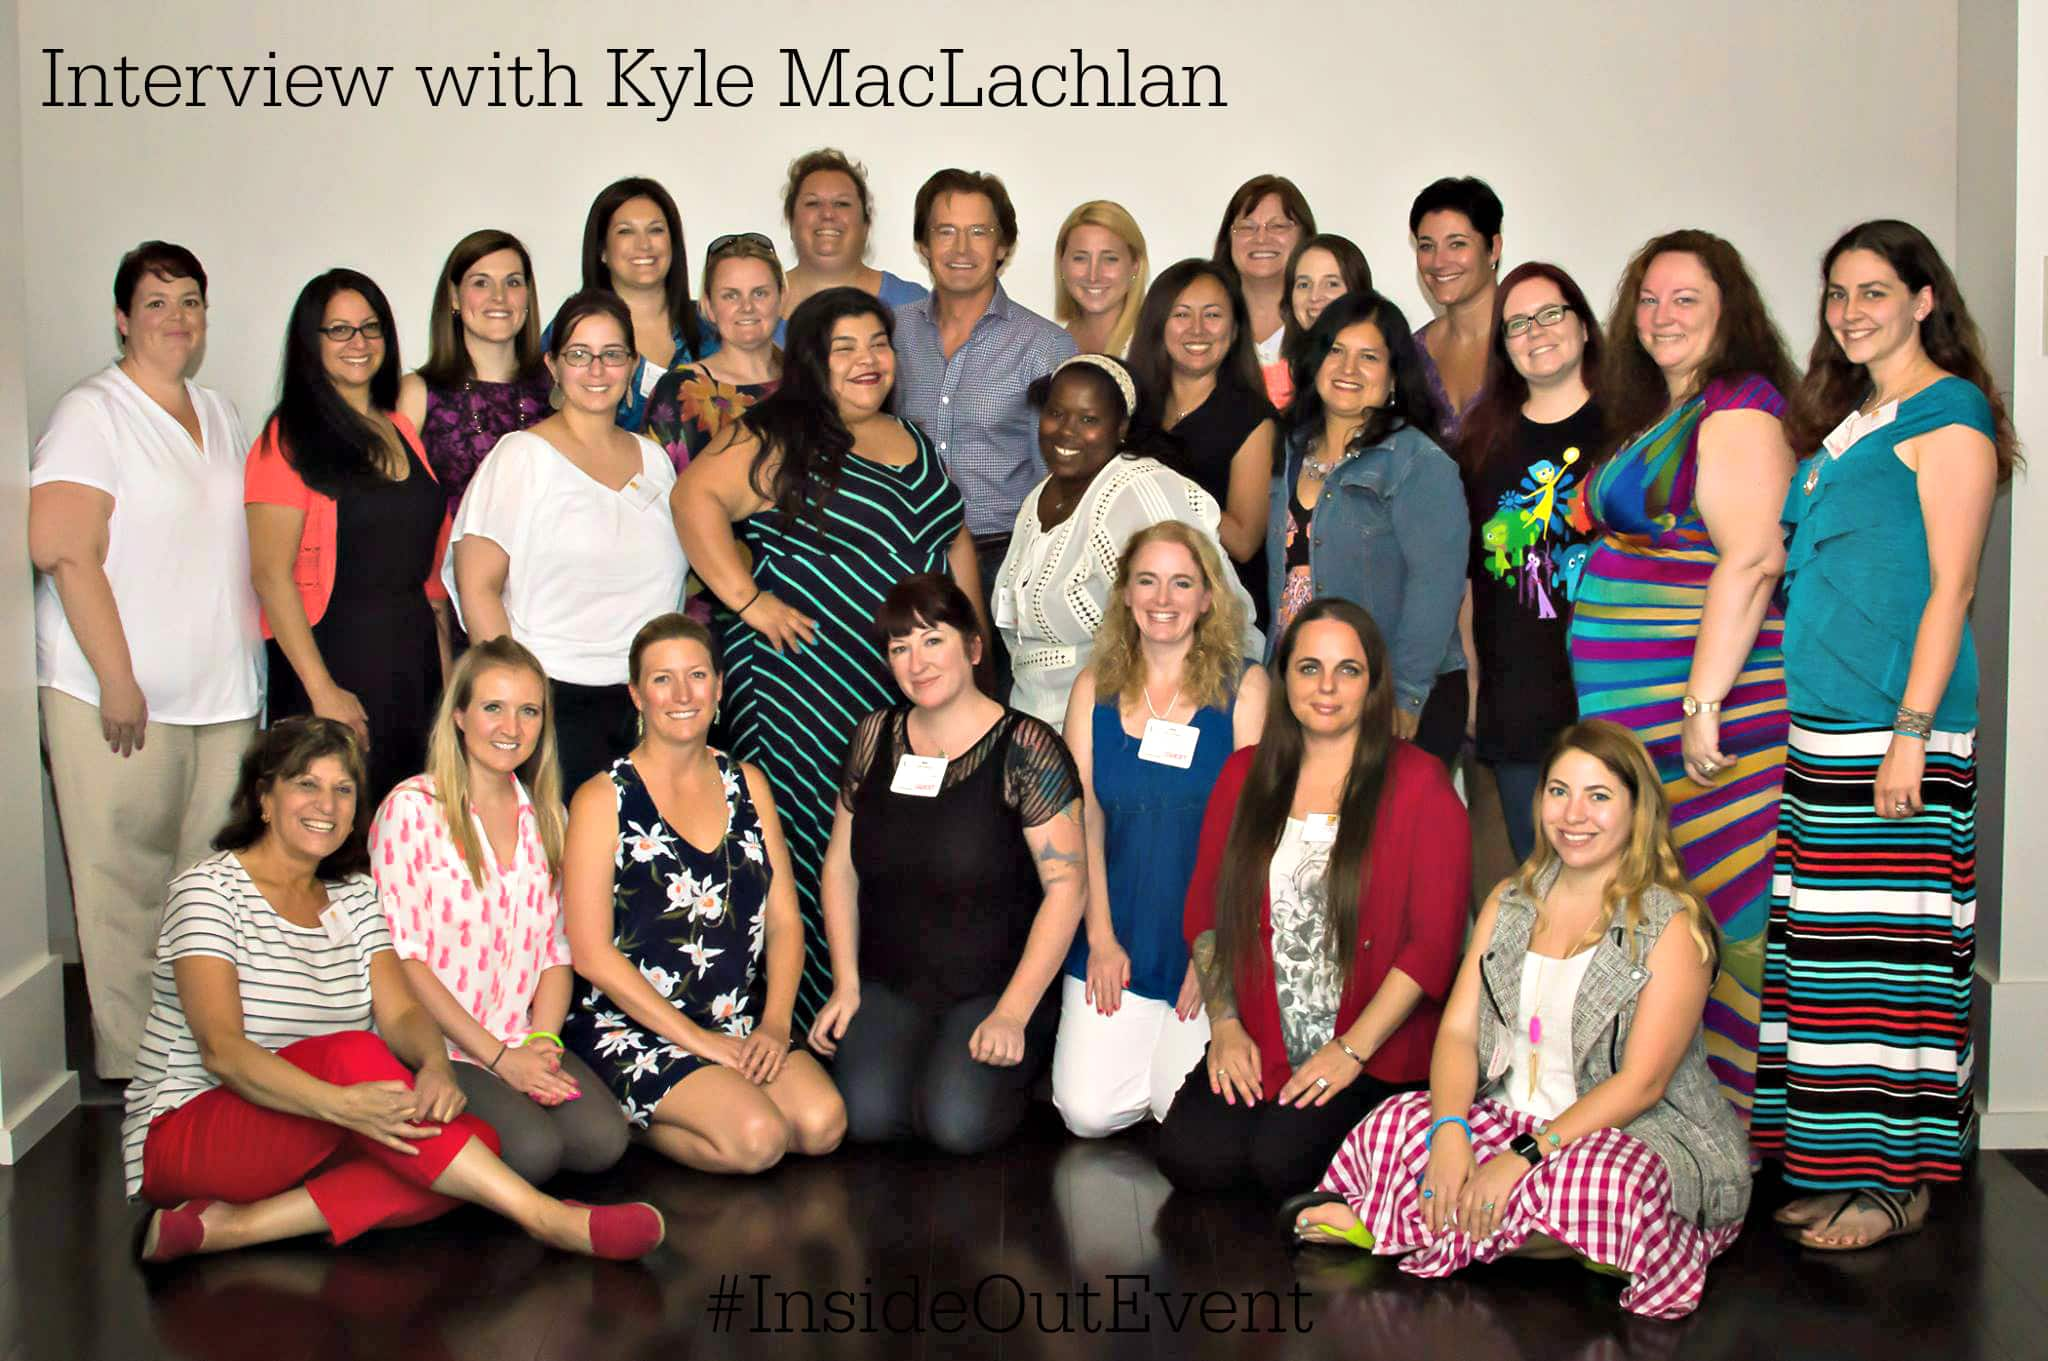 Kyle MacLachlan Turns Inside Out For Us #InsideOutEvent